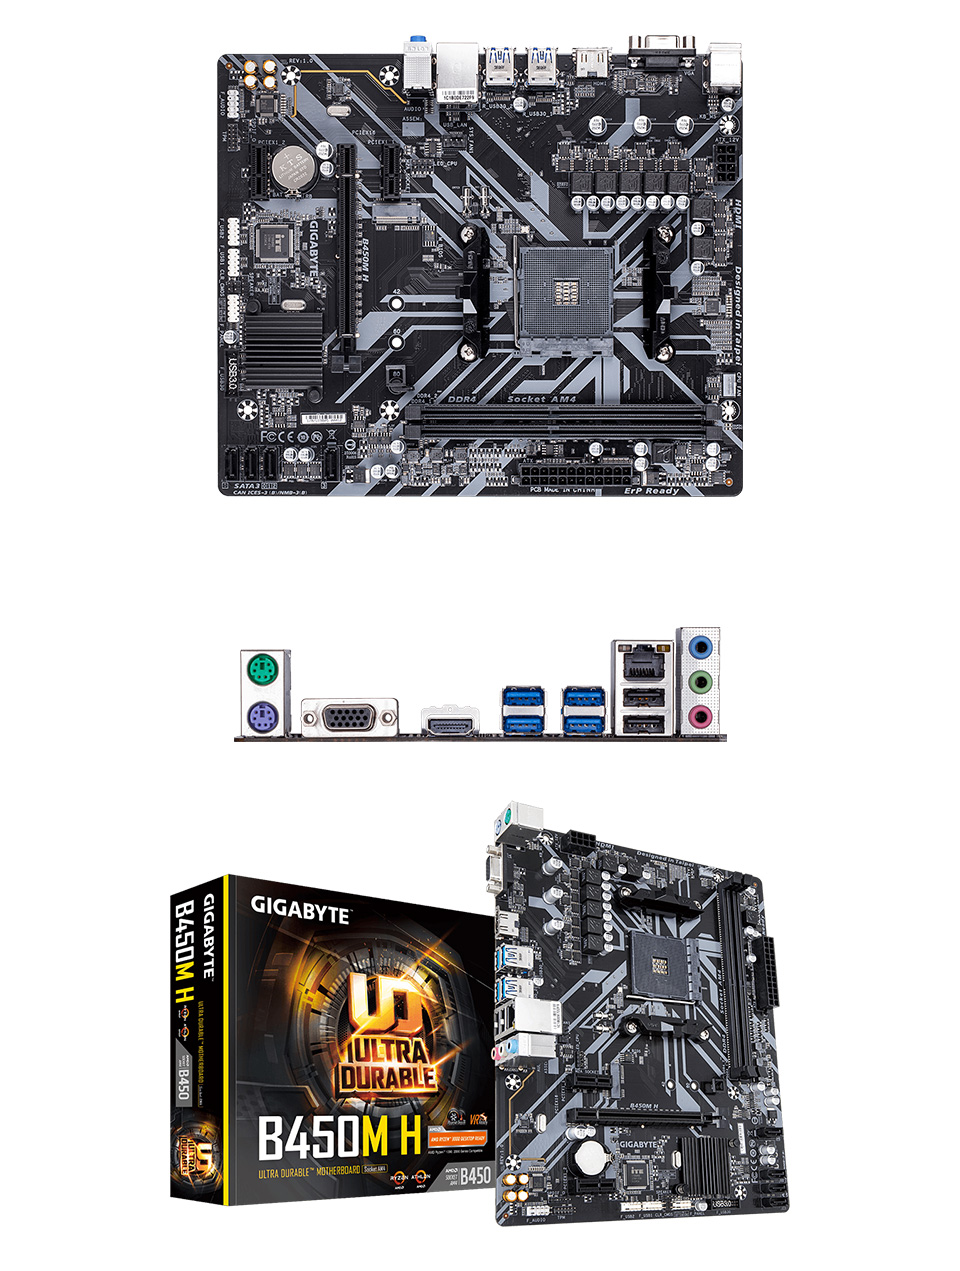 Gigabyte B450M-H Motherboard product